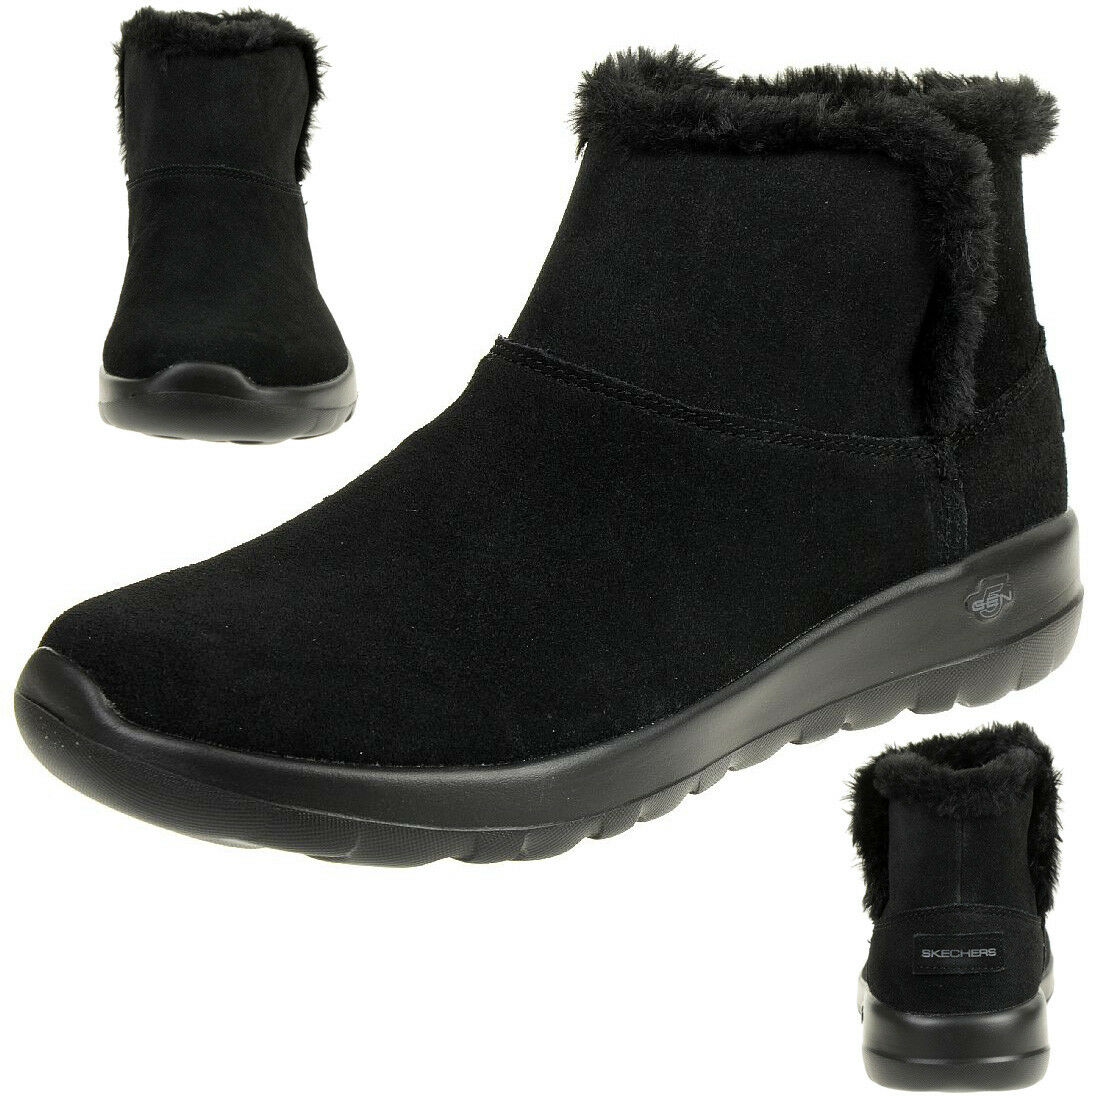 Skechers On the Go JOY BUNDLE UP Stiefel Damen Winterschuhe gefüttert schwarz